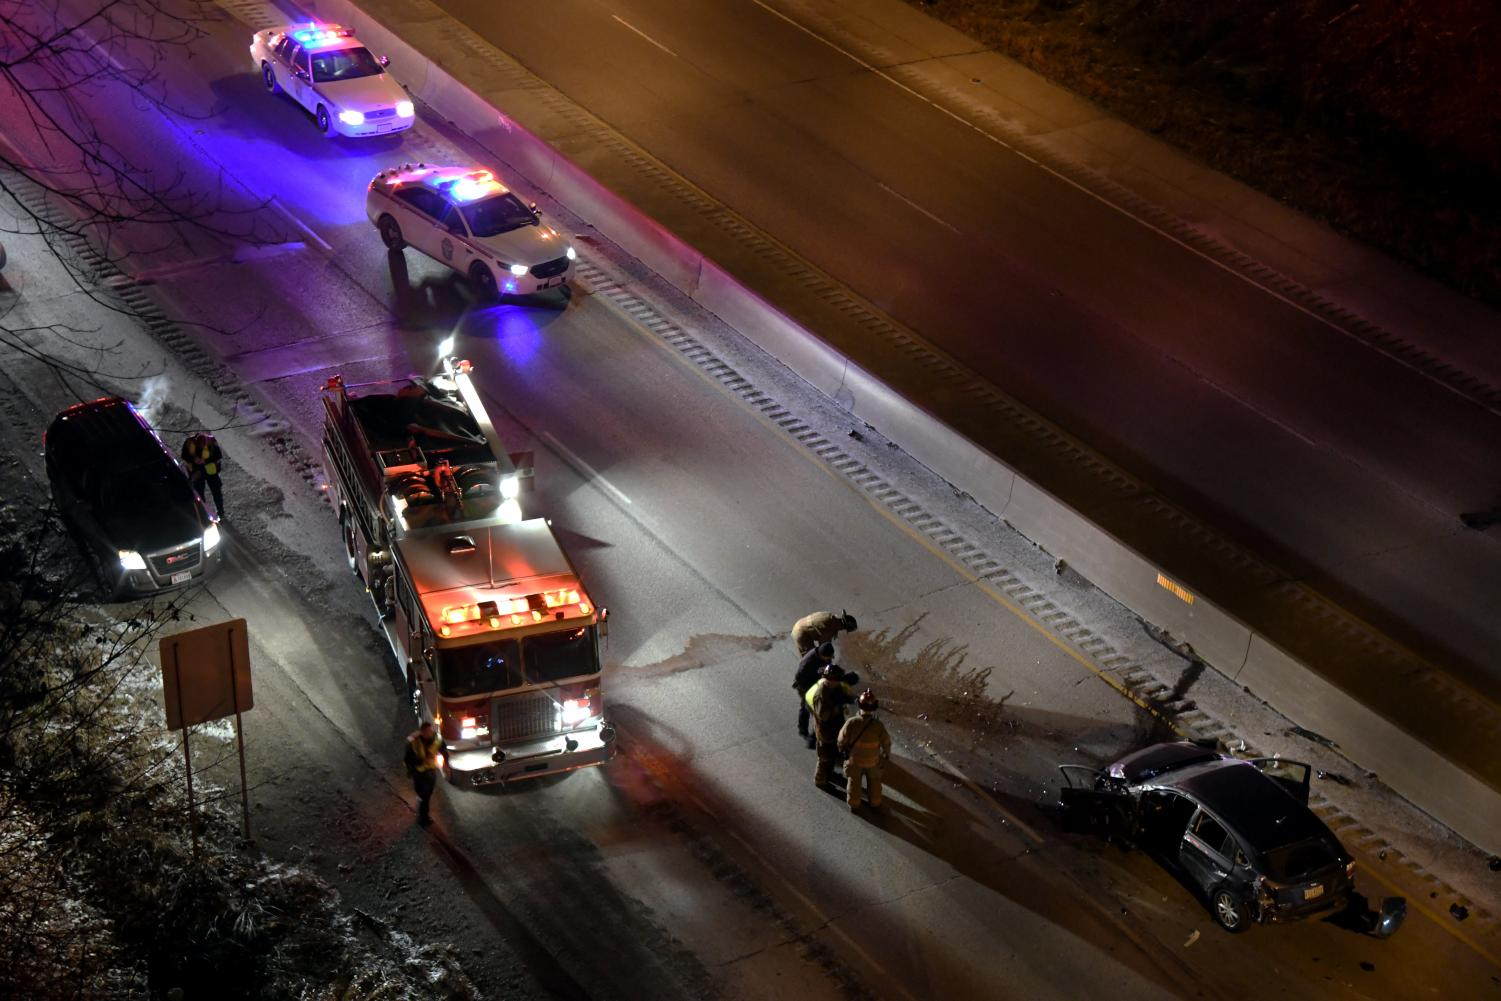 I-70 east reopened just after 8 p.m.